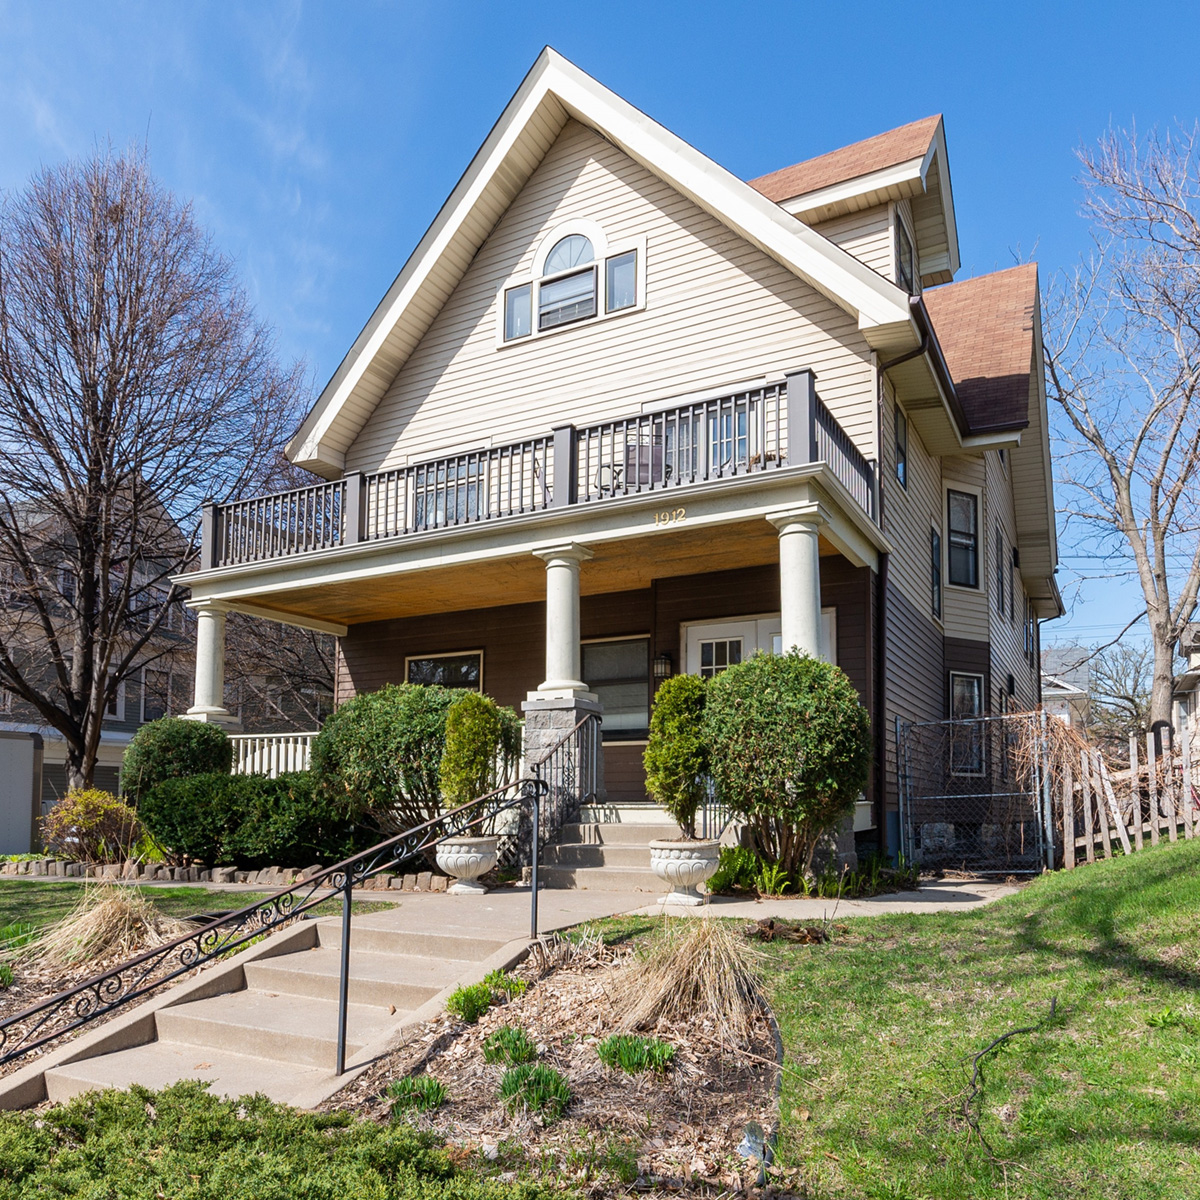 FOR SALE1912 EMERSON AVE S - Lowry HillMinneapolis, MNGreat investment opportunity located in the heart of Minneapolis's Lowry Hill neighborhood! 2 condos available in the same building to purchase as a package or individually.Download brochure